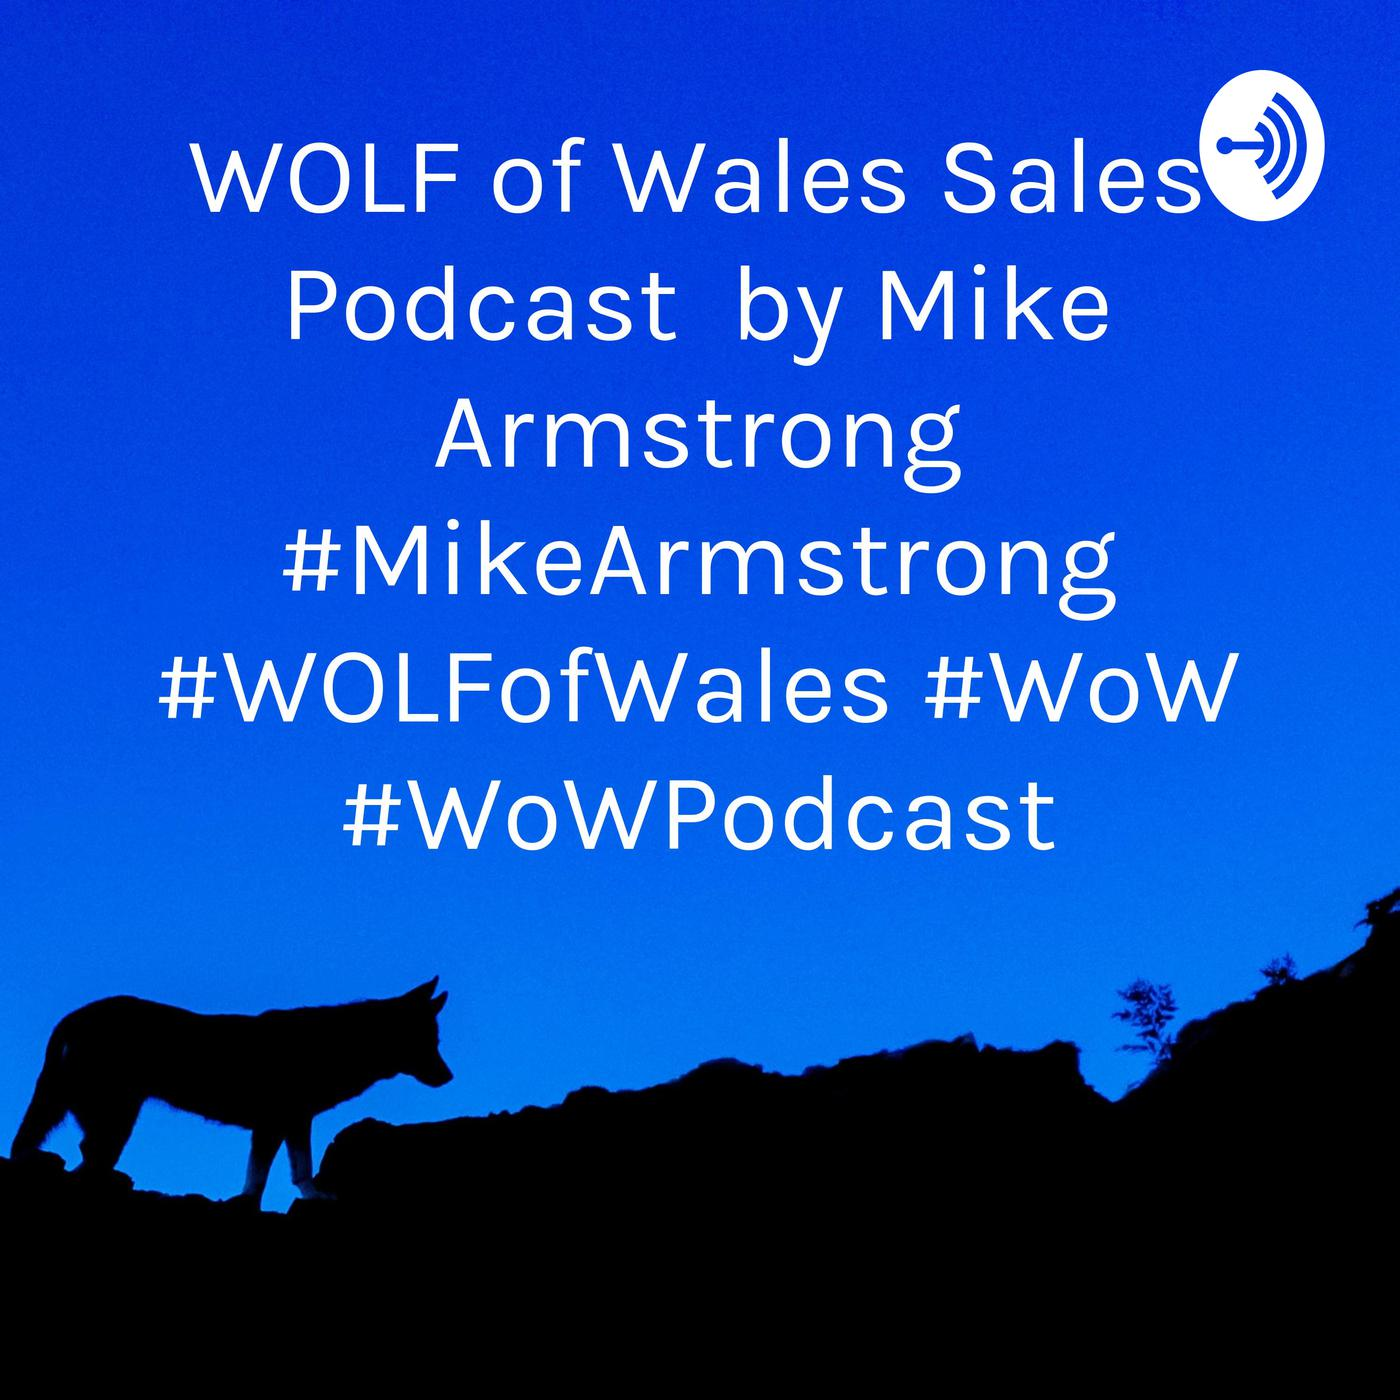 wolf-of-wales-sales-podcast-by-mike-UzlgBJ3v74P-faLoVtze-Kk.1400x1400